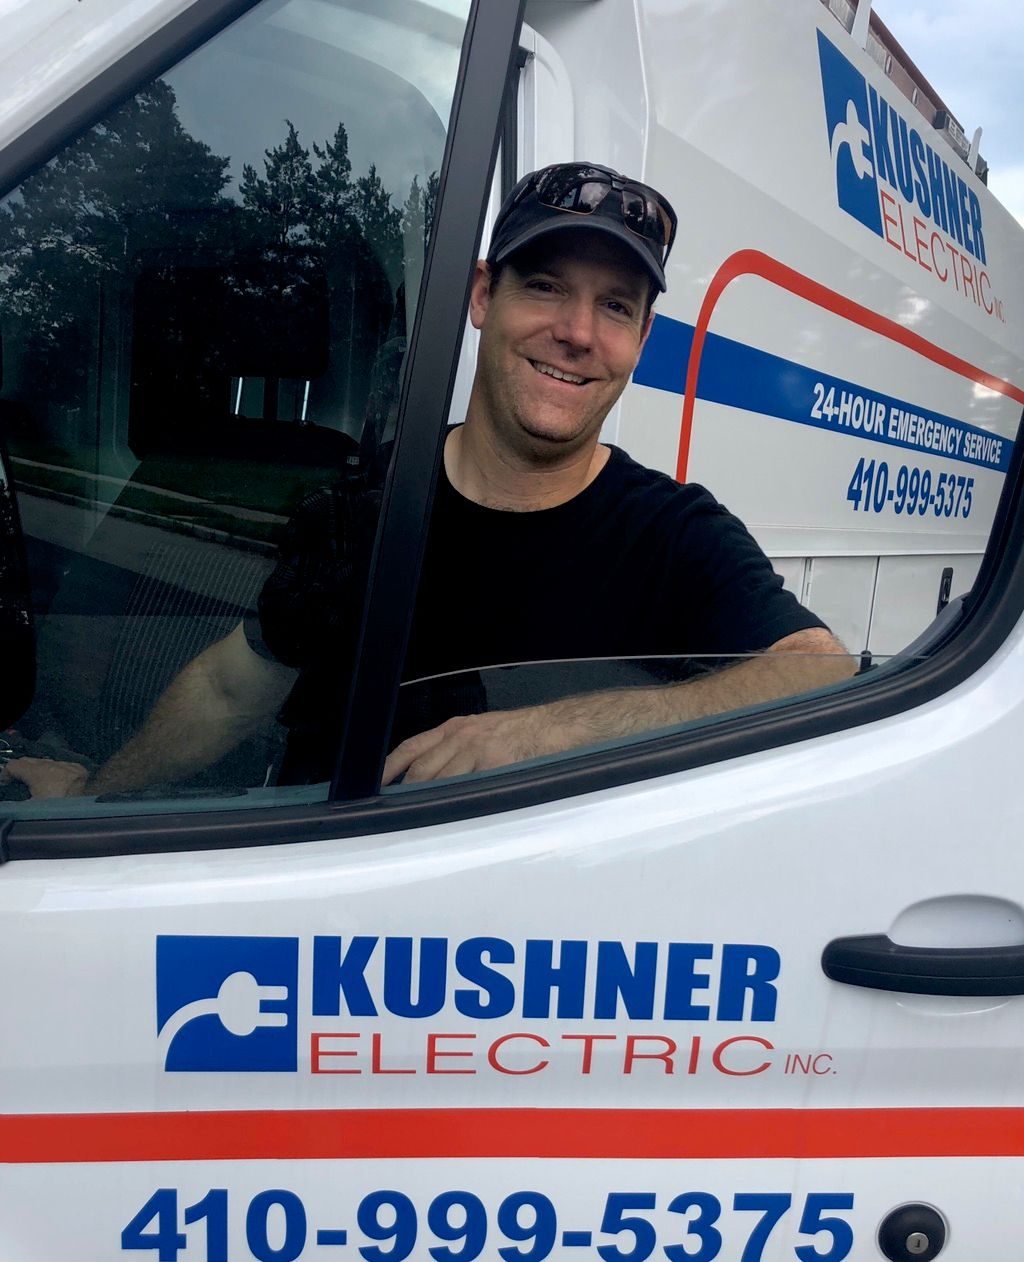 Kushner Electric, Inc.